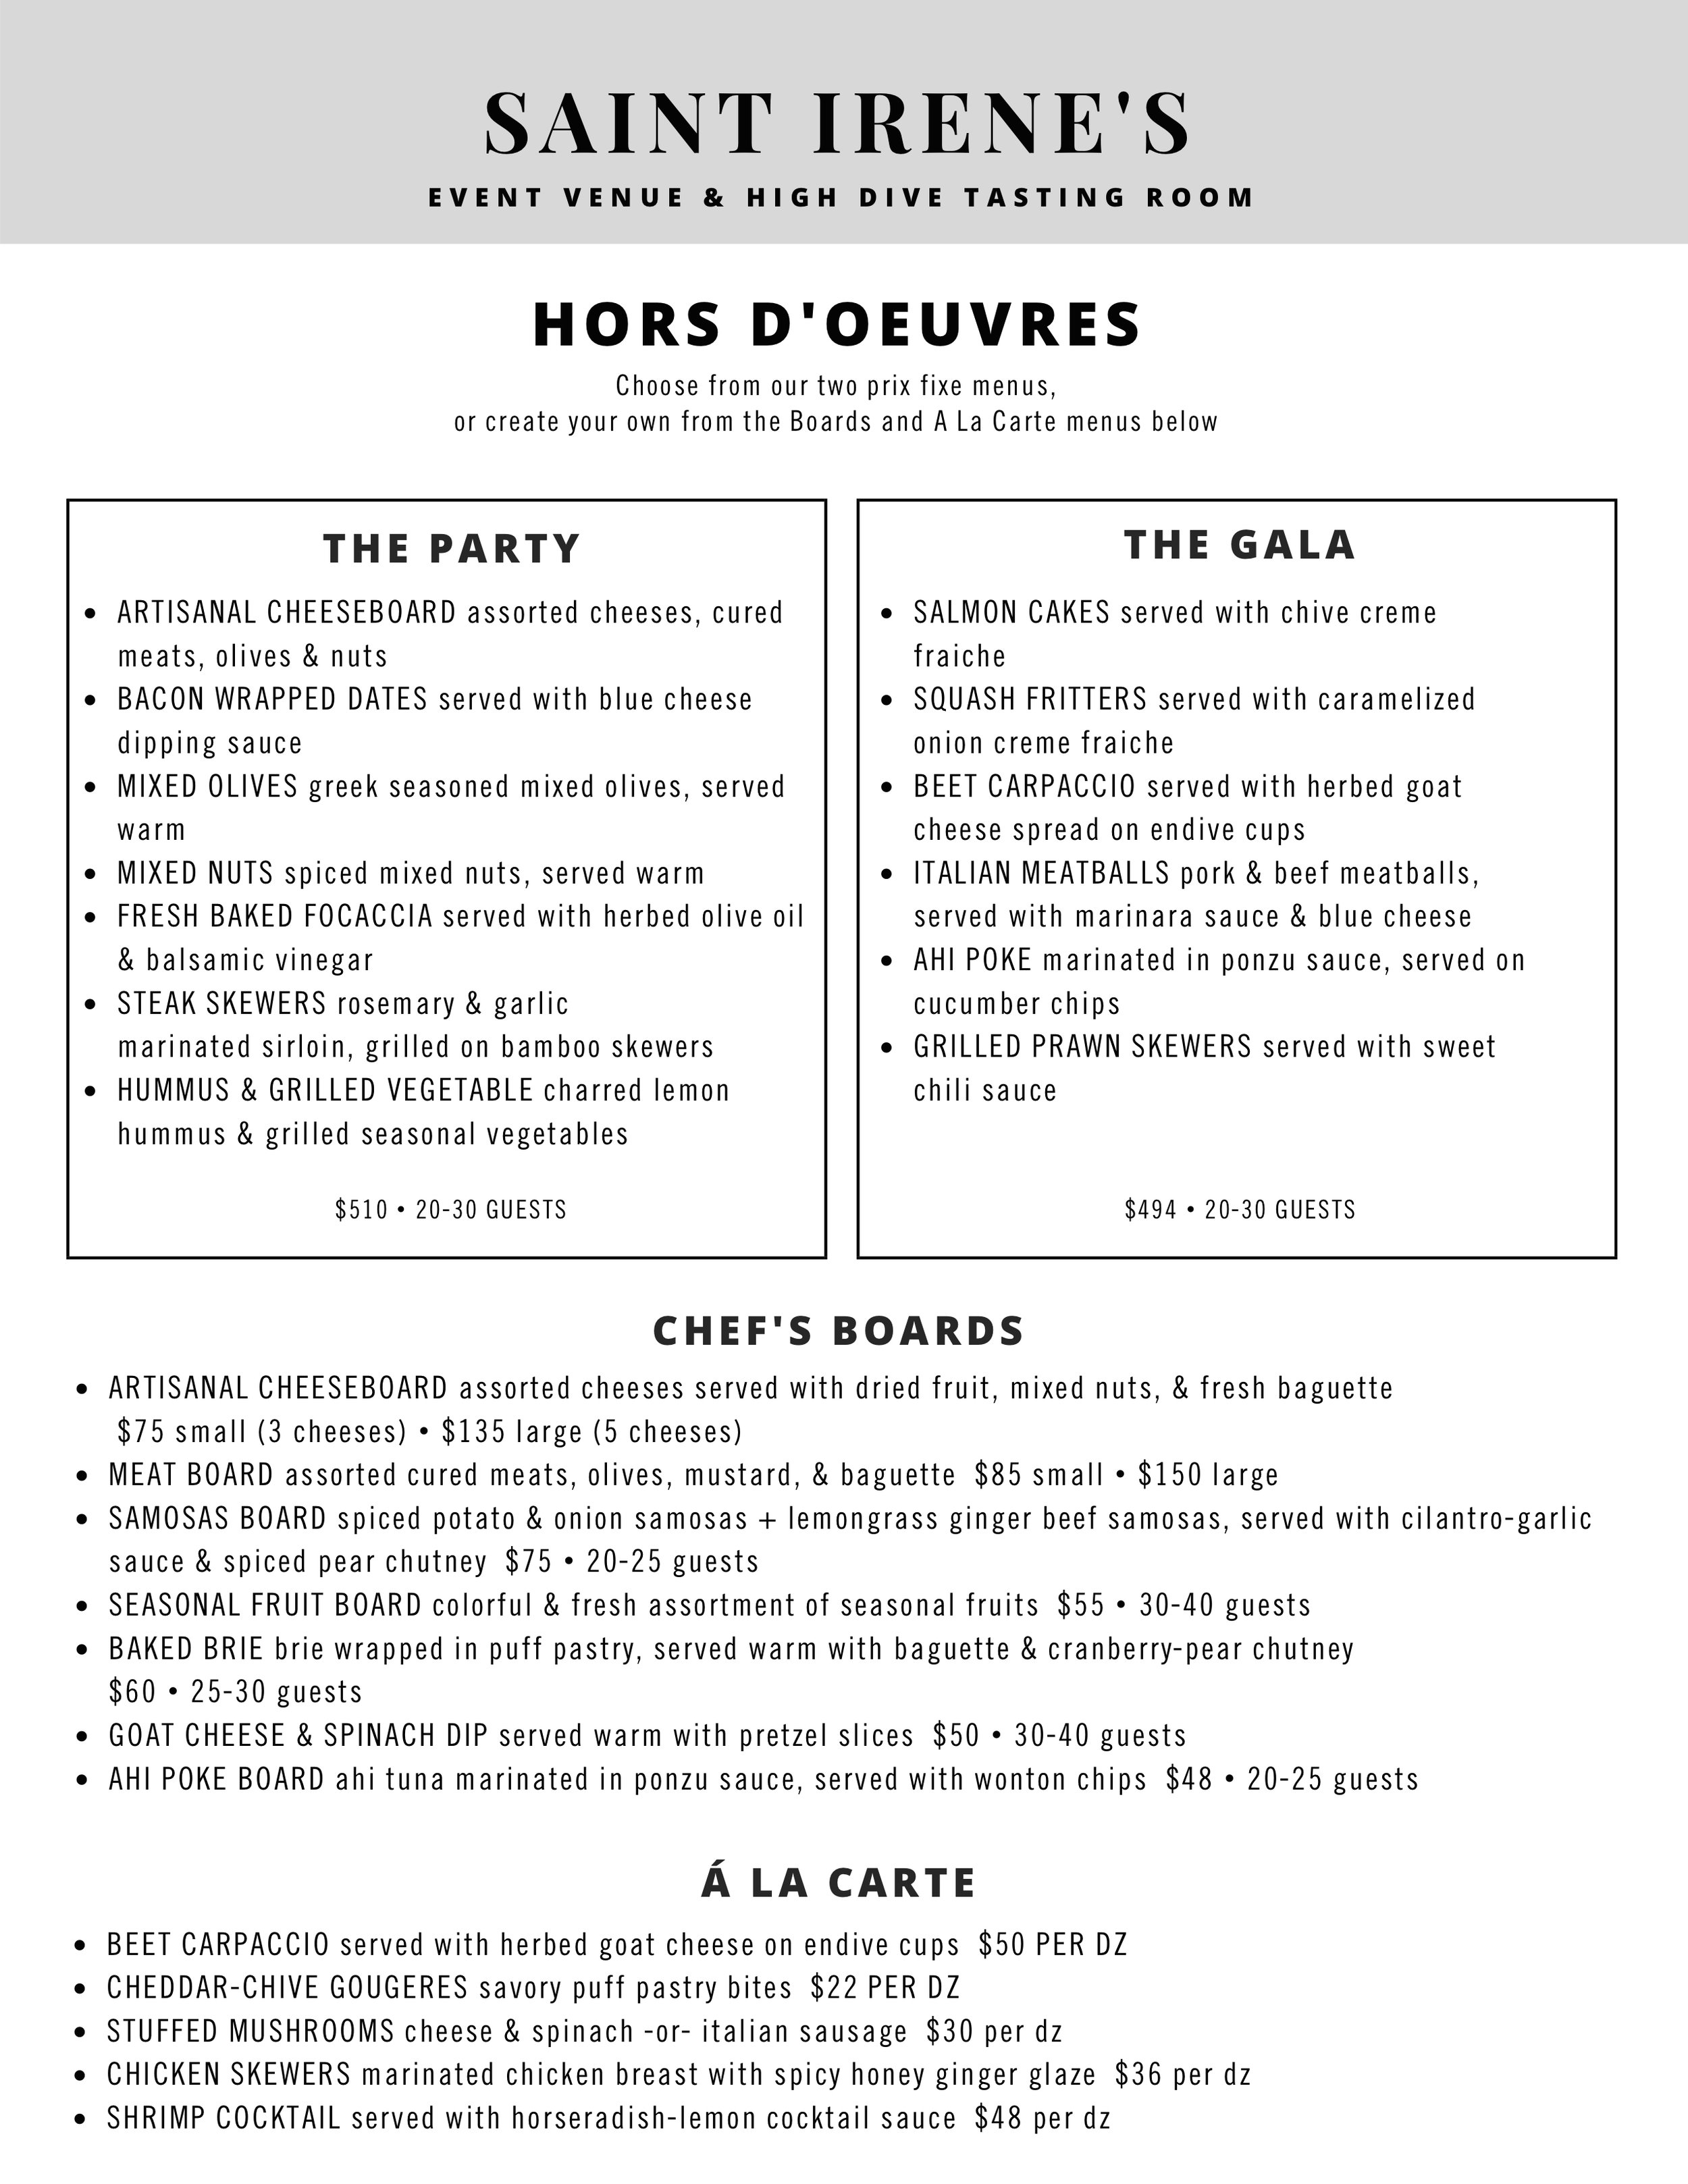 Hor D'oeuvres.jpg